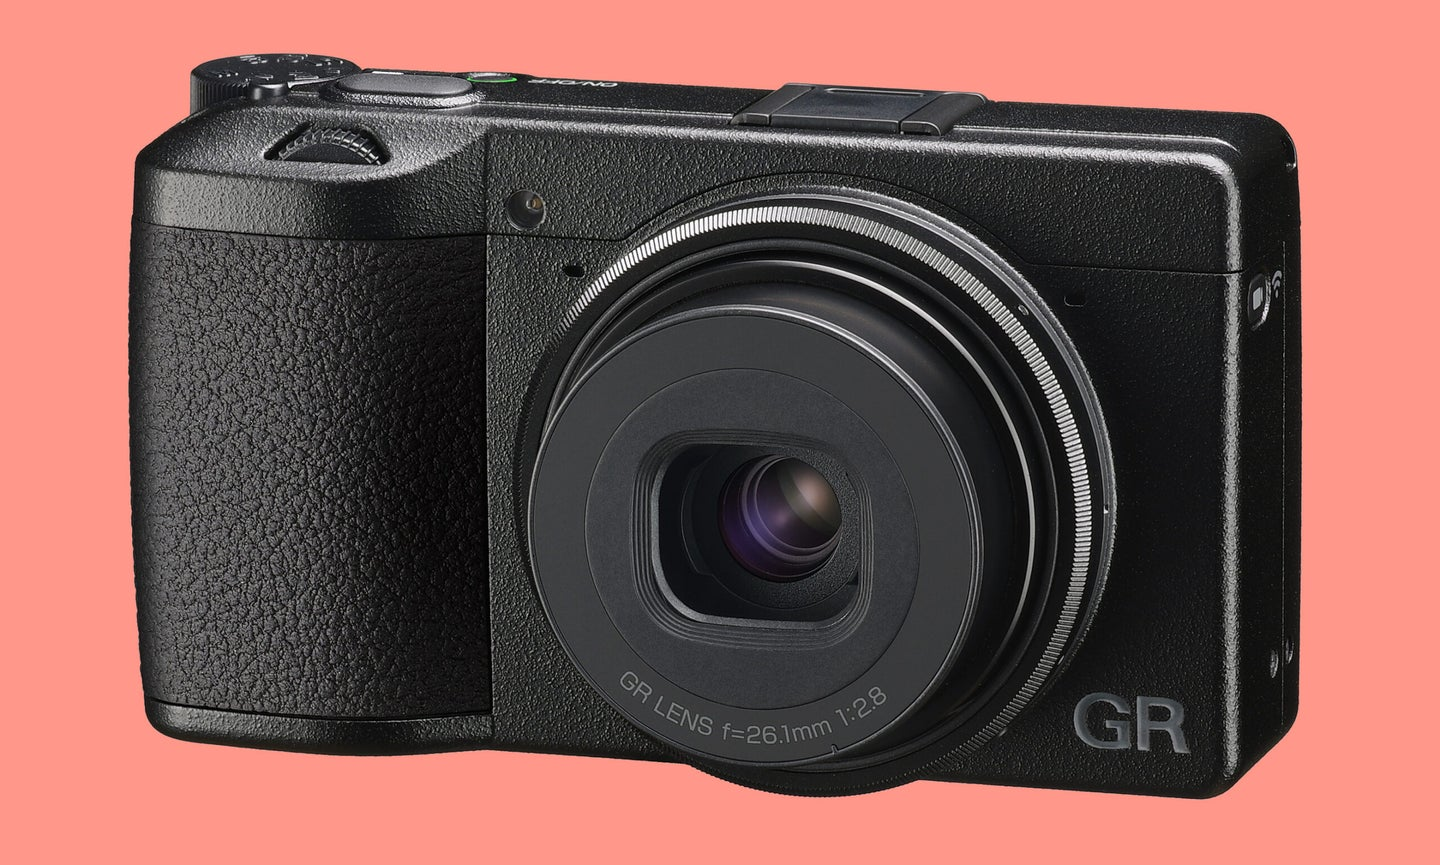 The front of the new Ricoh GR IIIx.